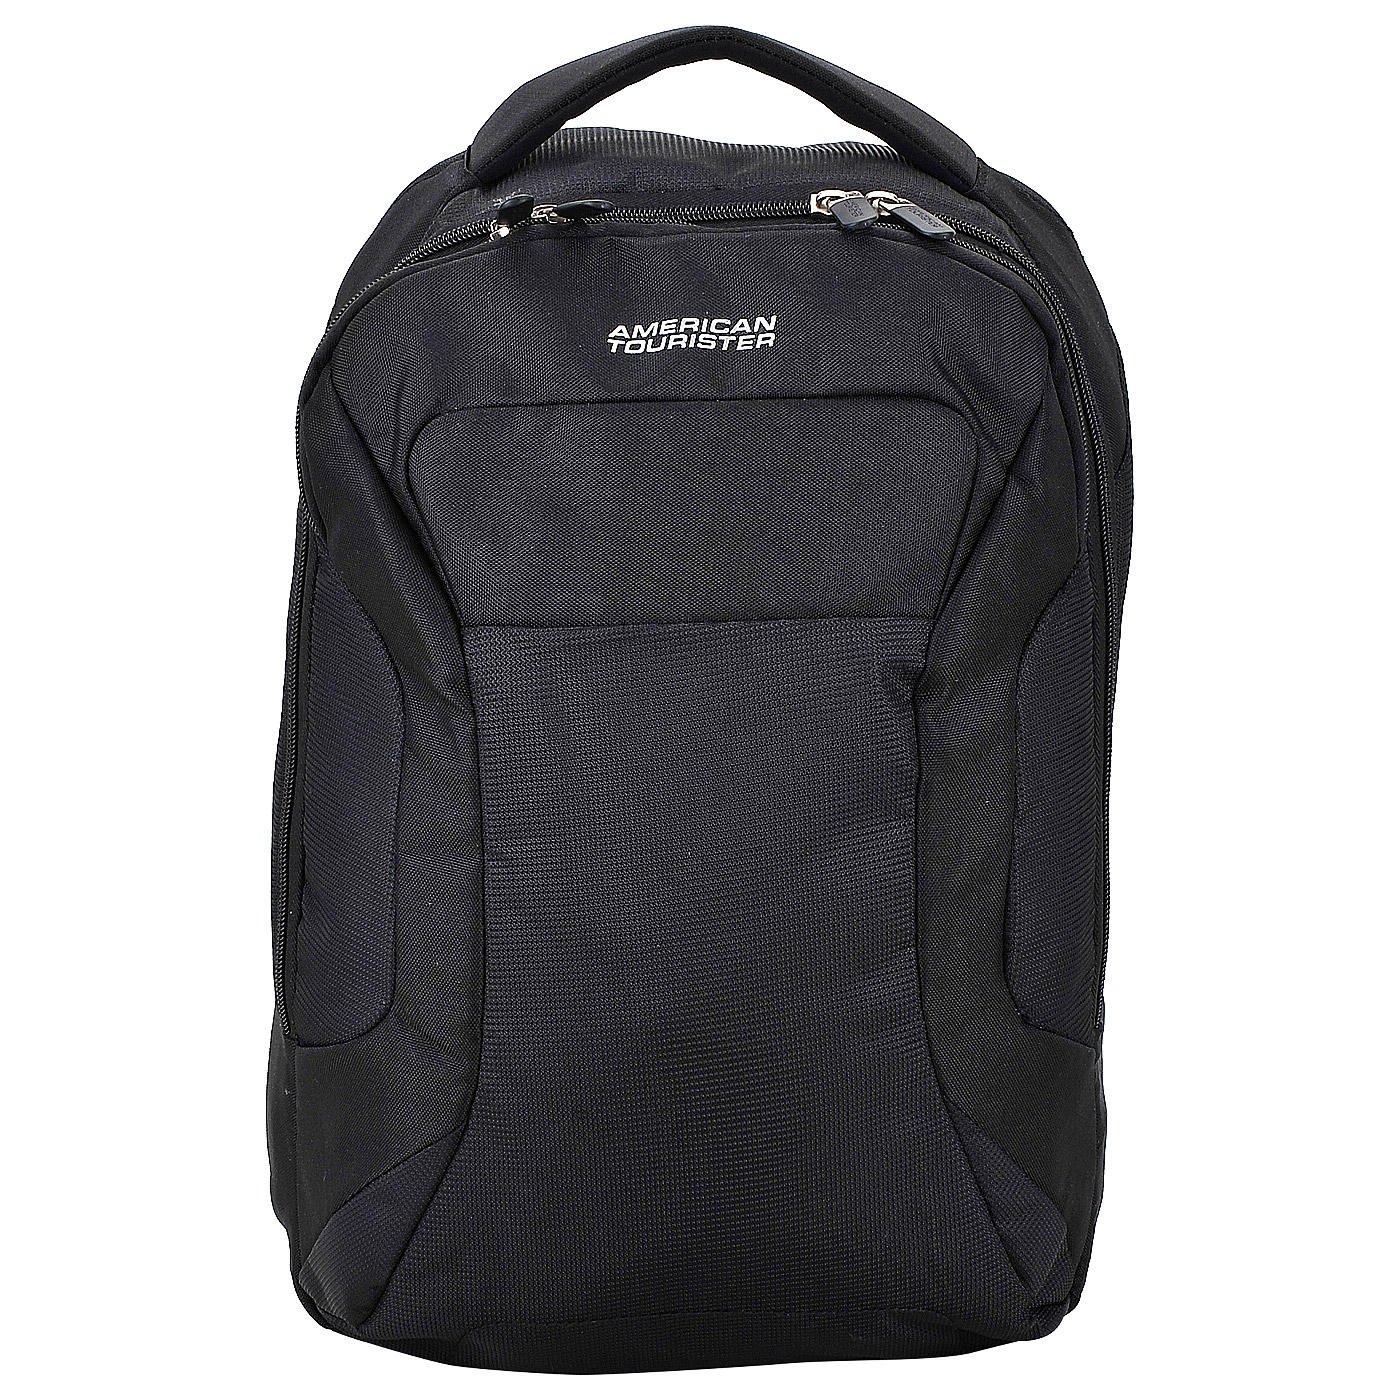 American Tourister 16G09008